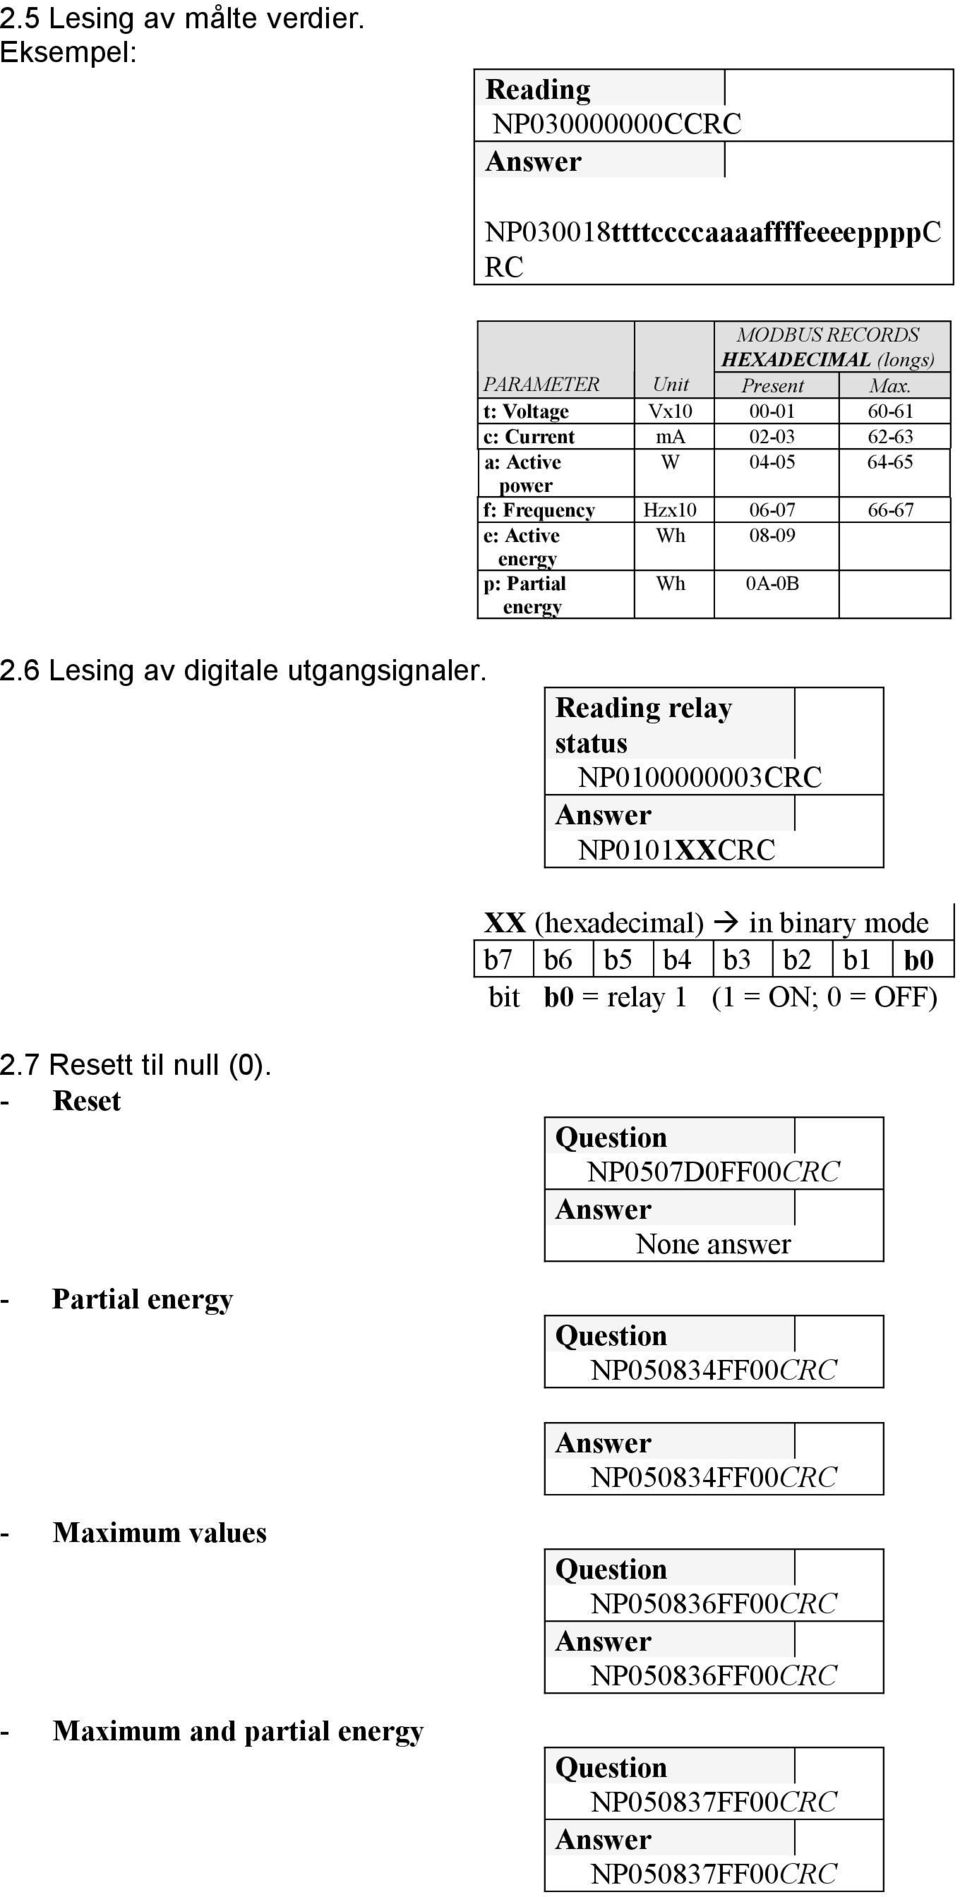 6 Lesing av digitale utgangsignaler. Reading relay status NP0100000003CRC NP0101XXCRC XX (hexadecimal) à in binary mode b7 b6 b5 b4 b3 b2 b1 b0 bit b0 = relay 1 (1 = ON; 0 = OFF) 2.